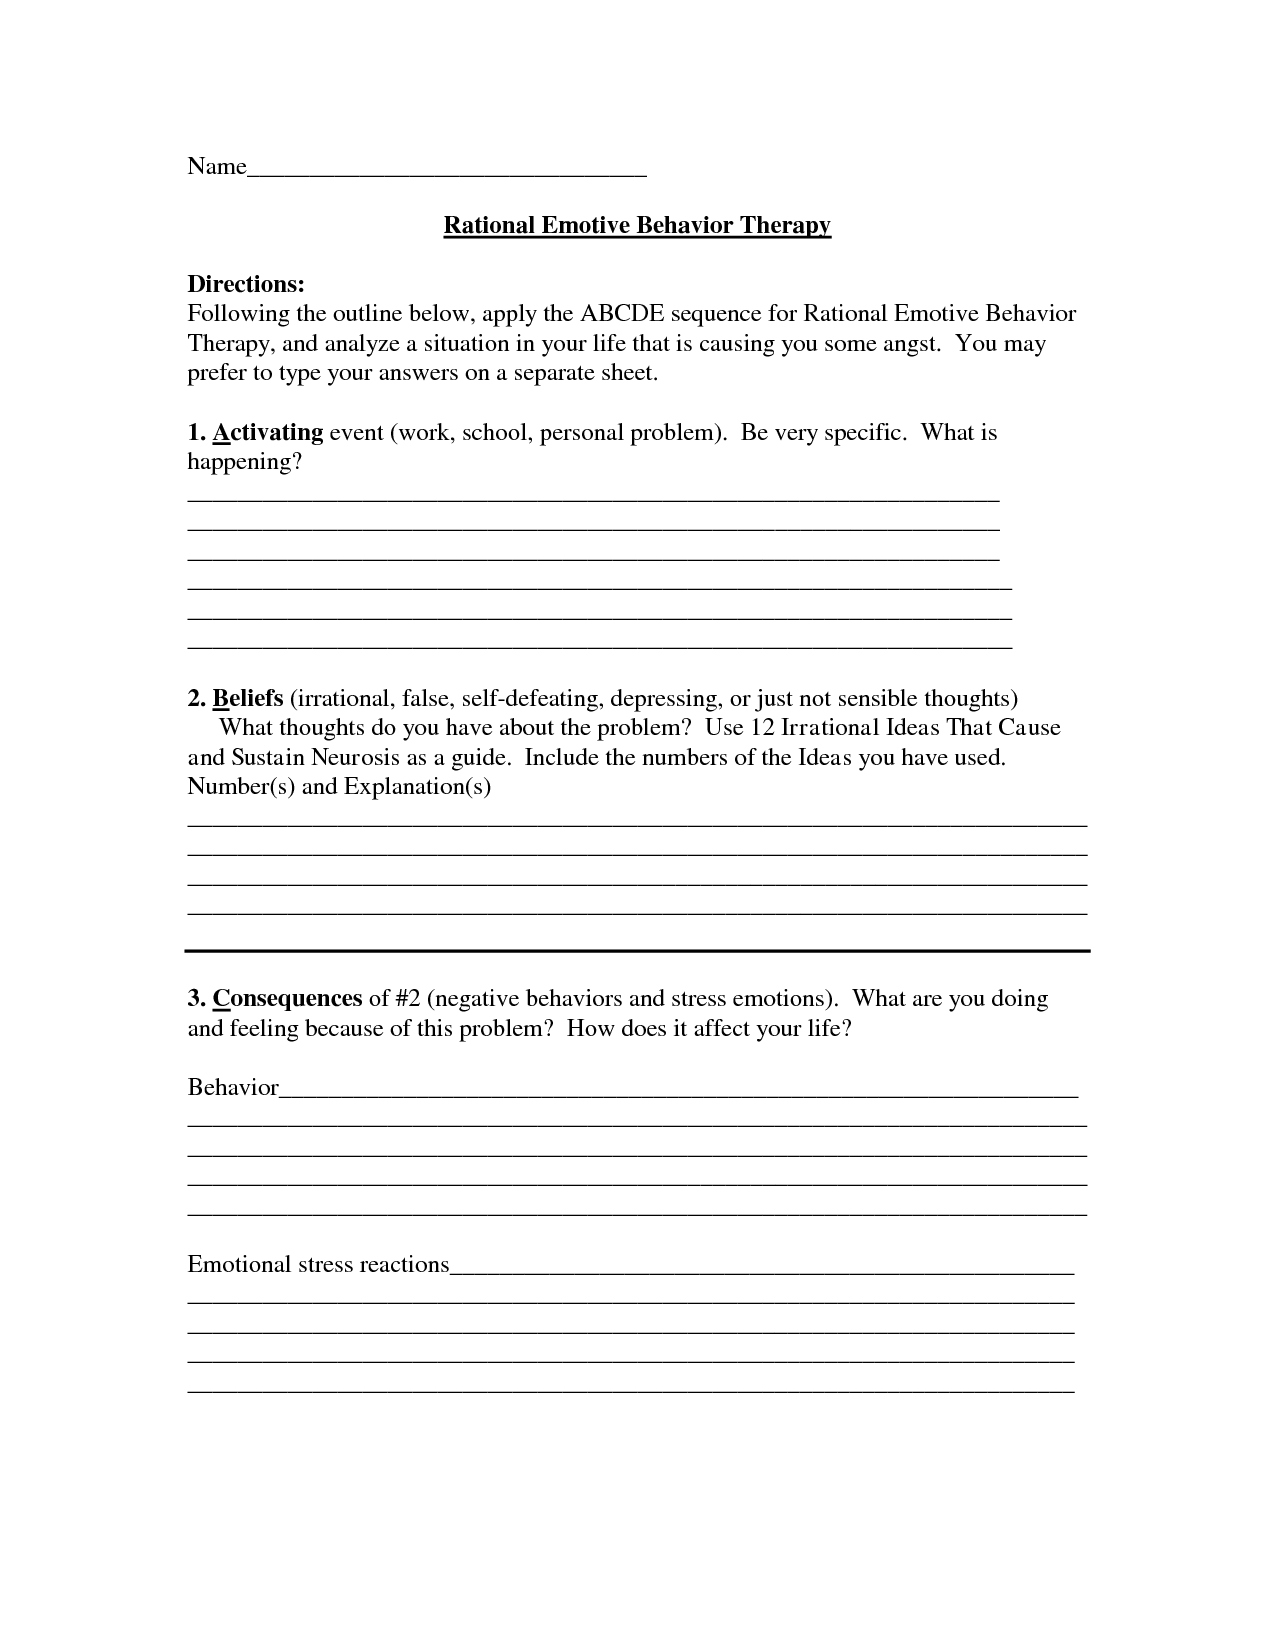 Marriage Values Worksheet